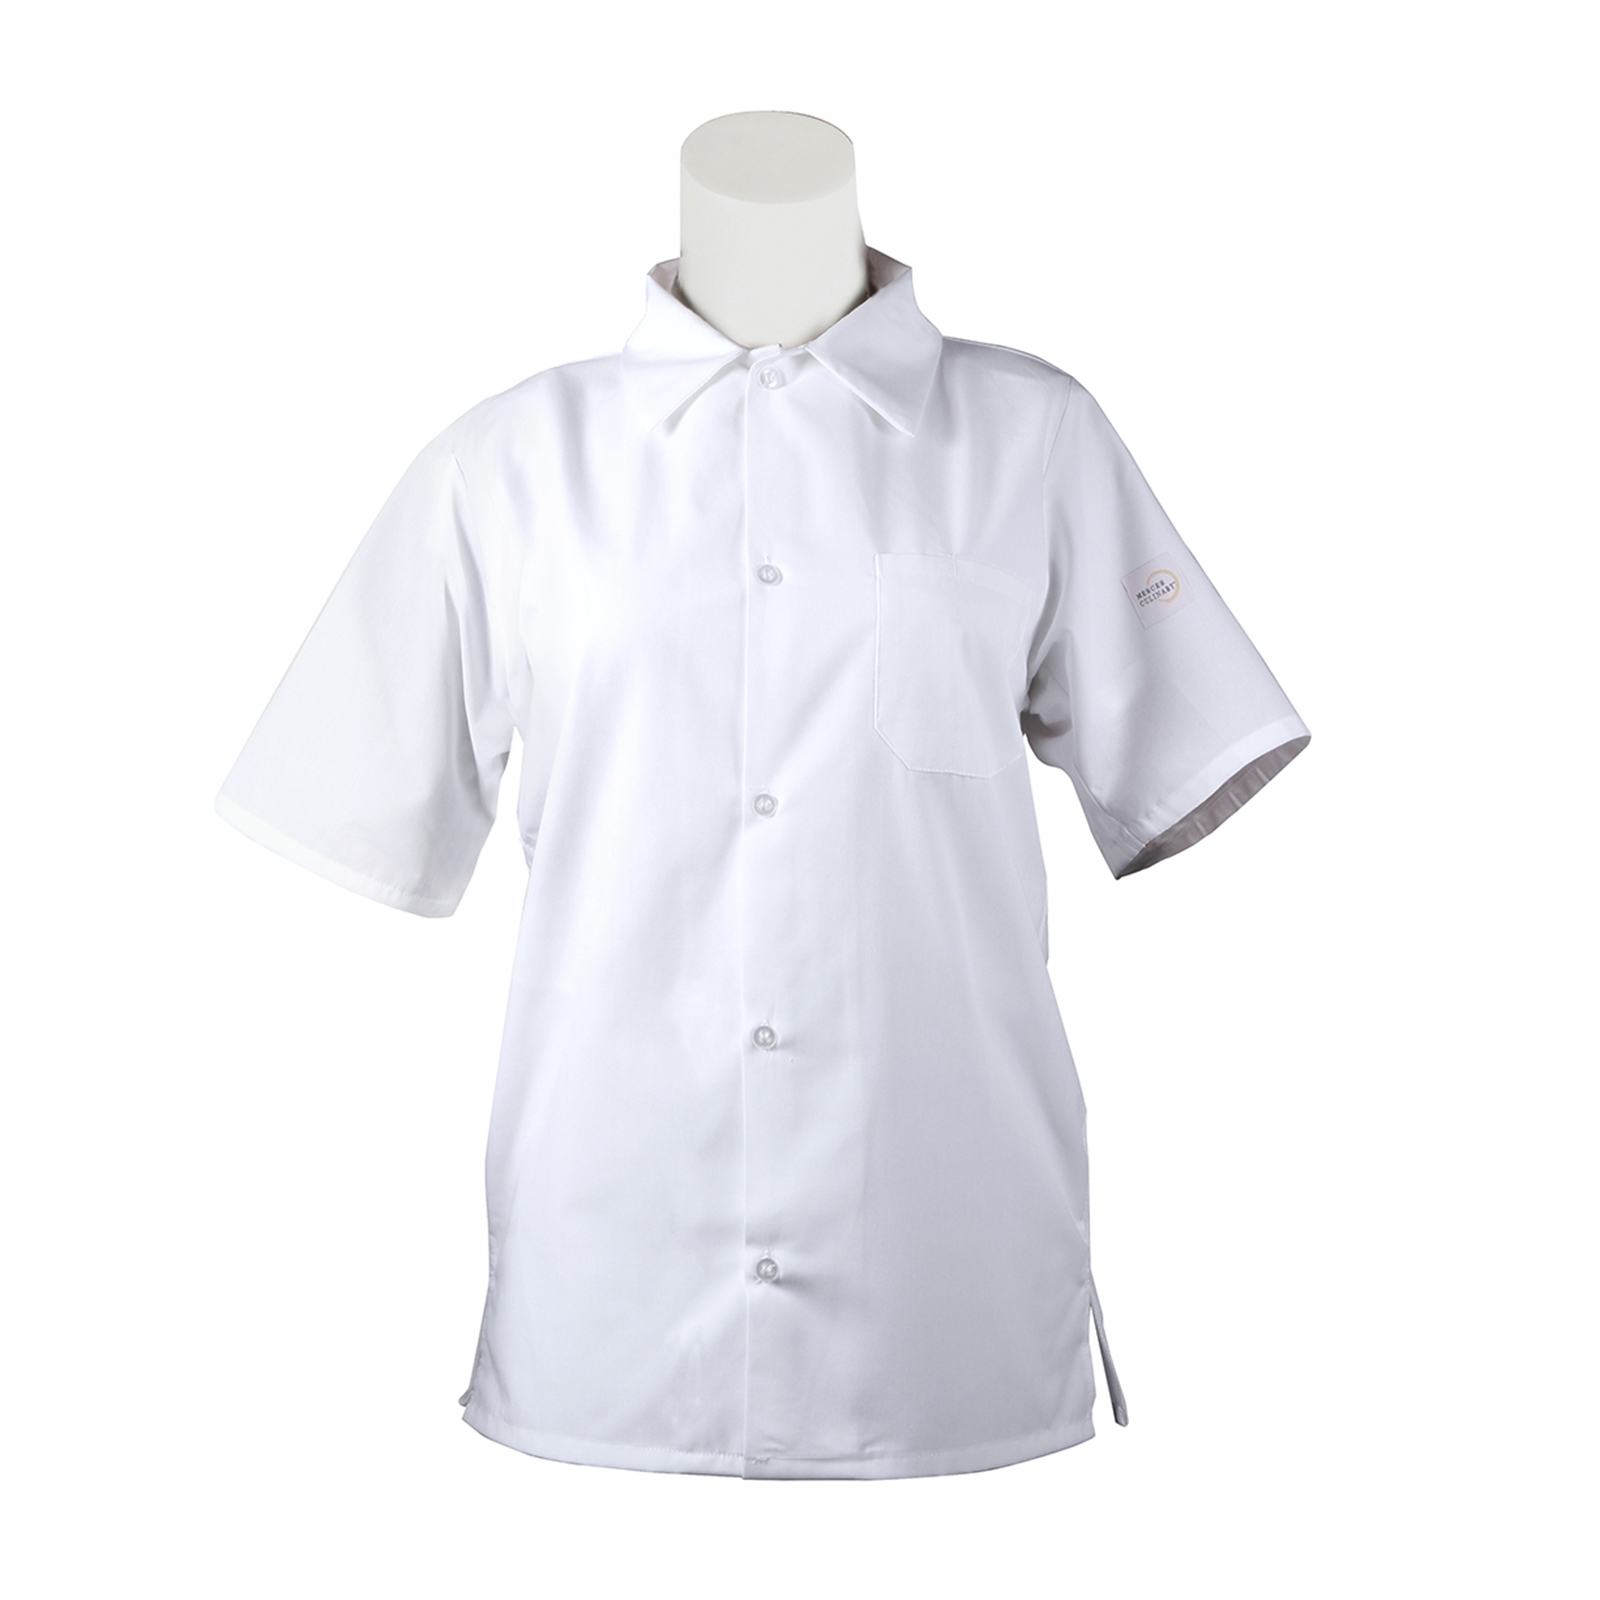 Mercer Culinary M60200WH5X cook's shirt